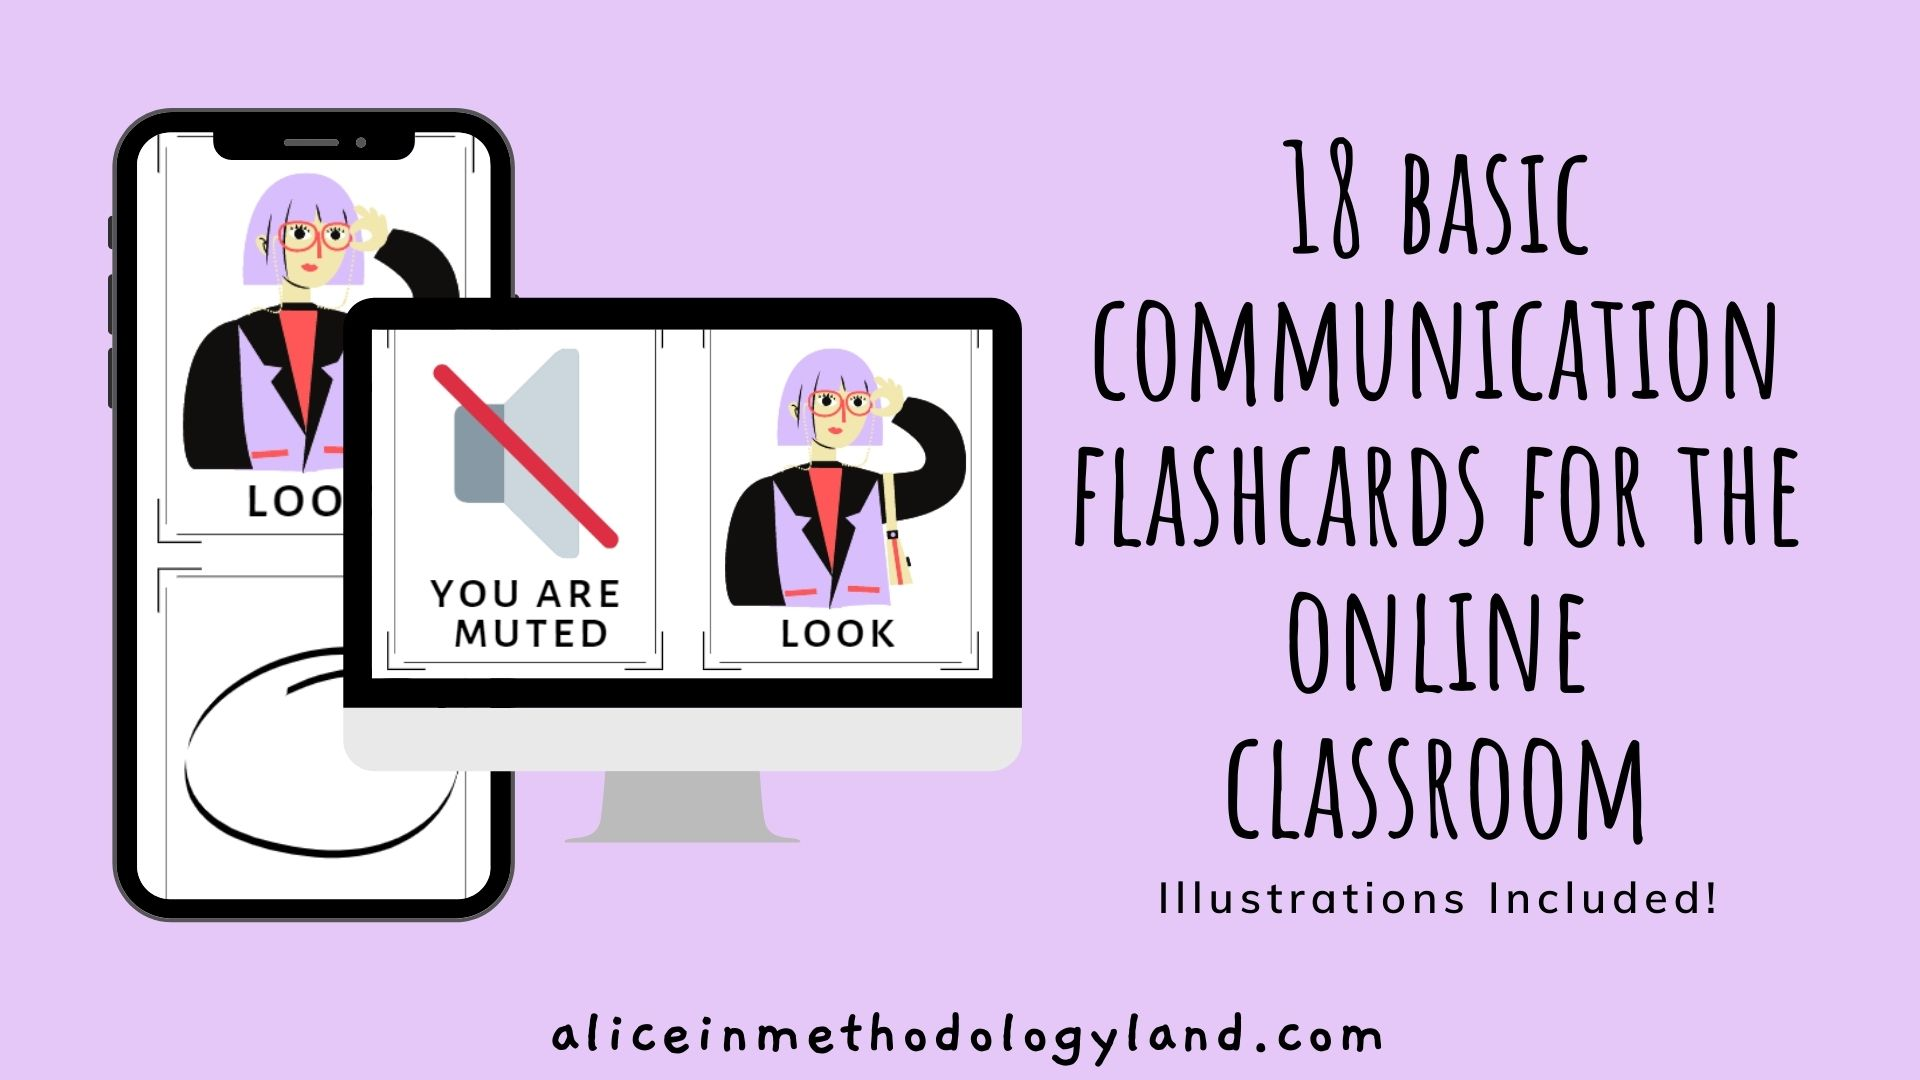 18 Basic Communication Flashcards for the Online Classroom